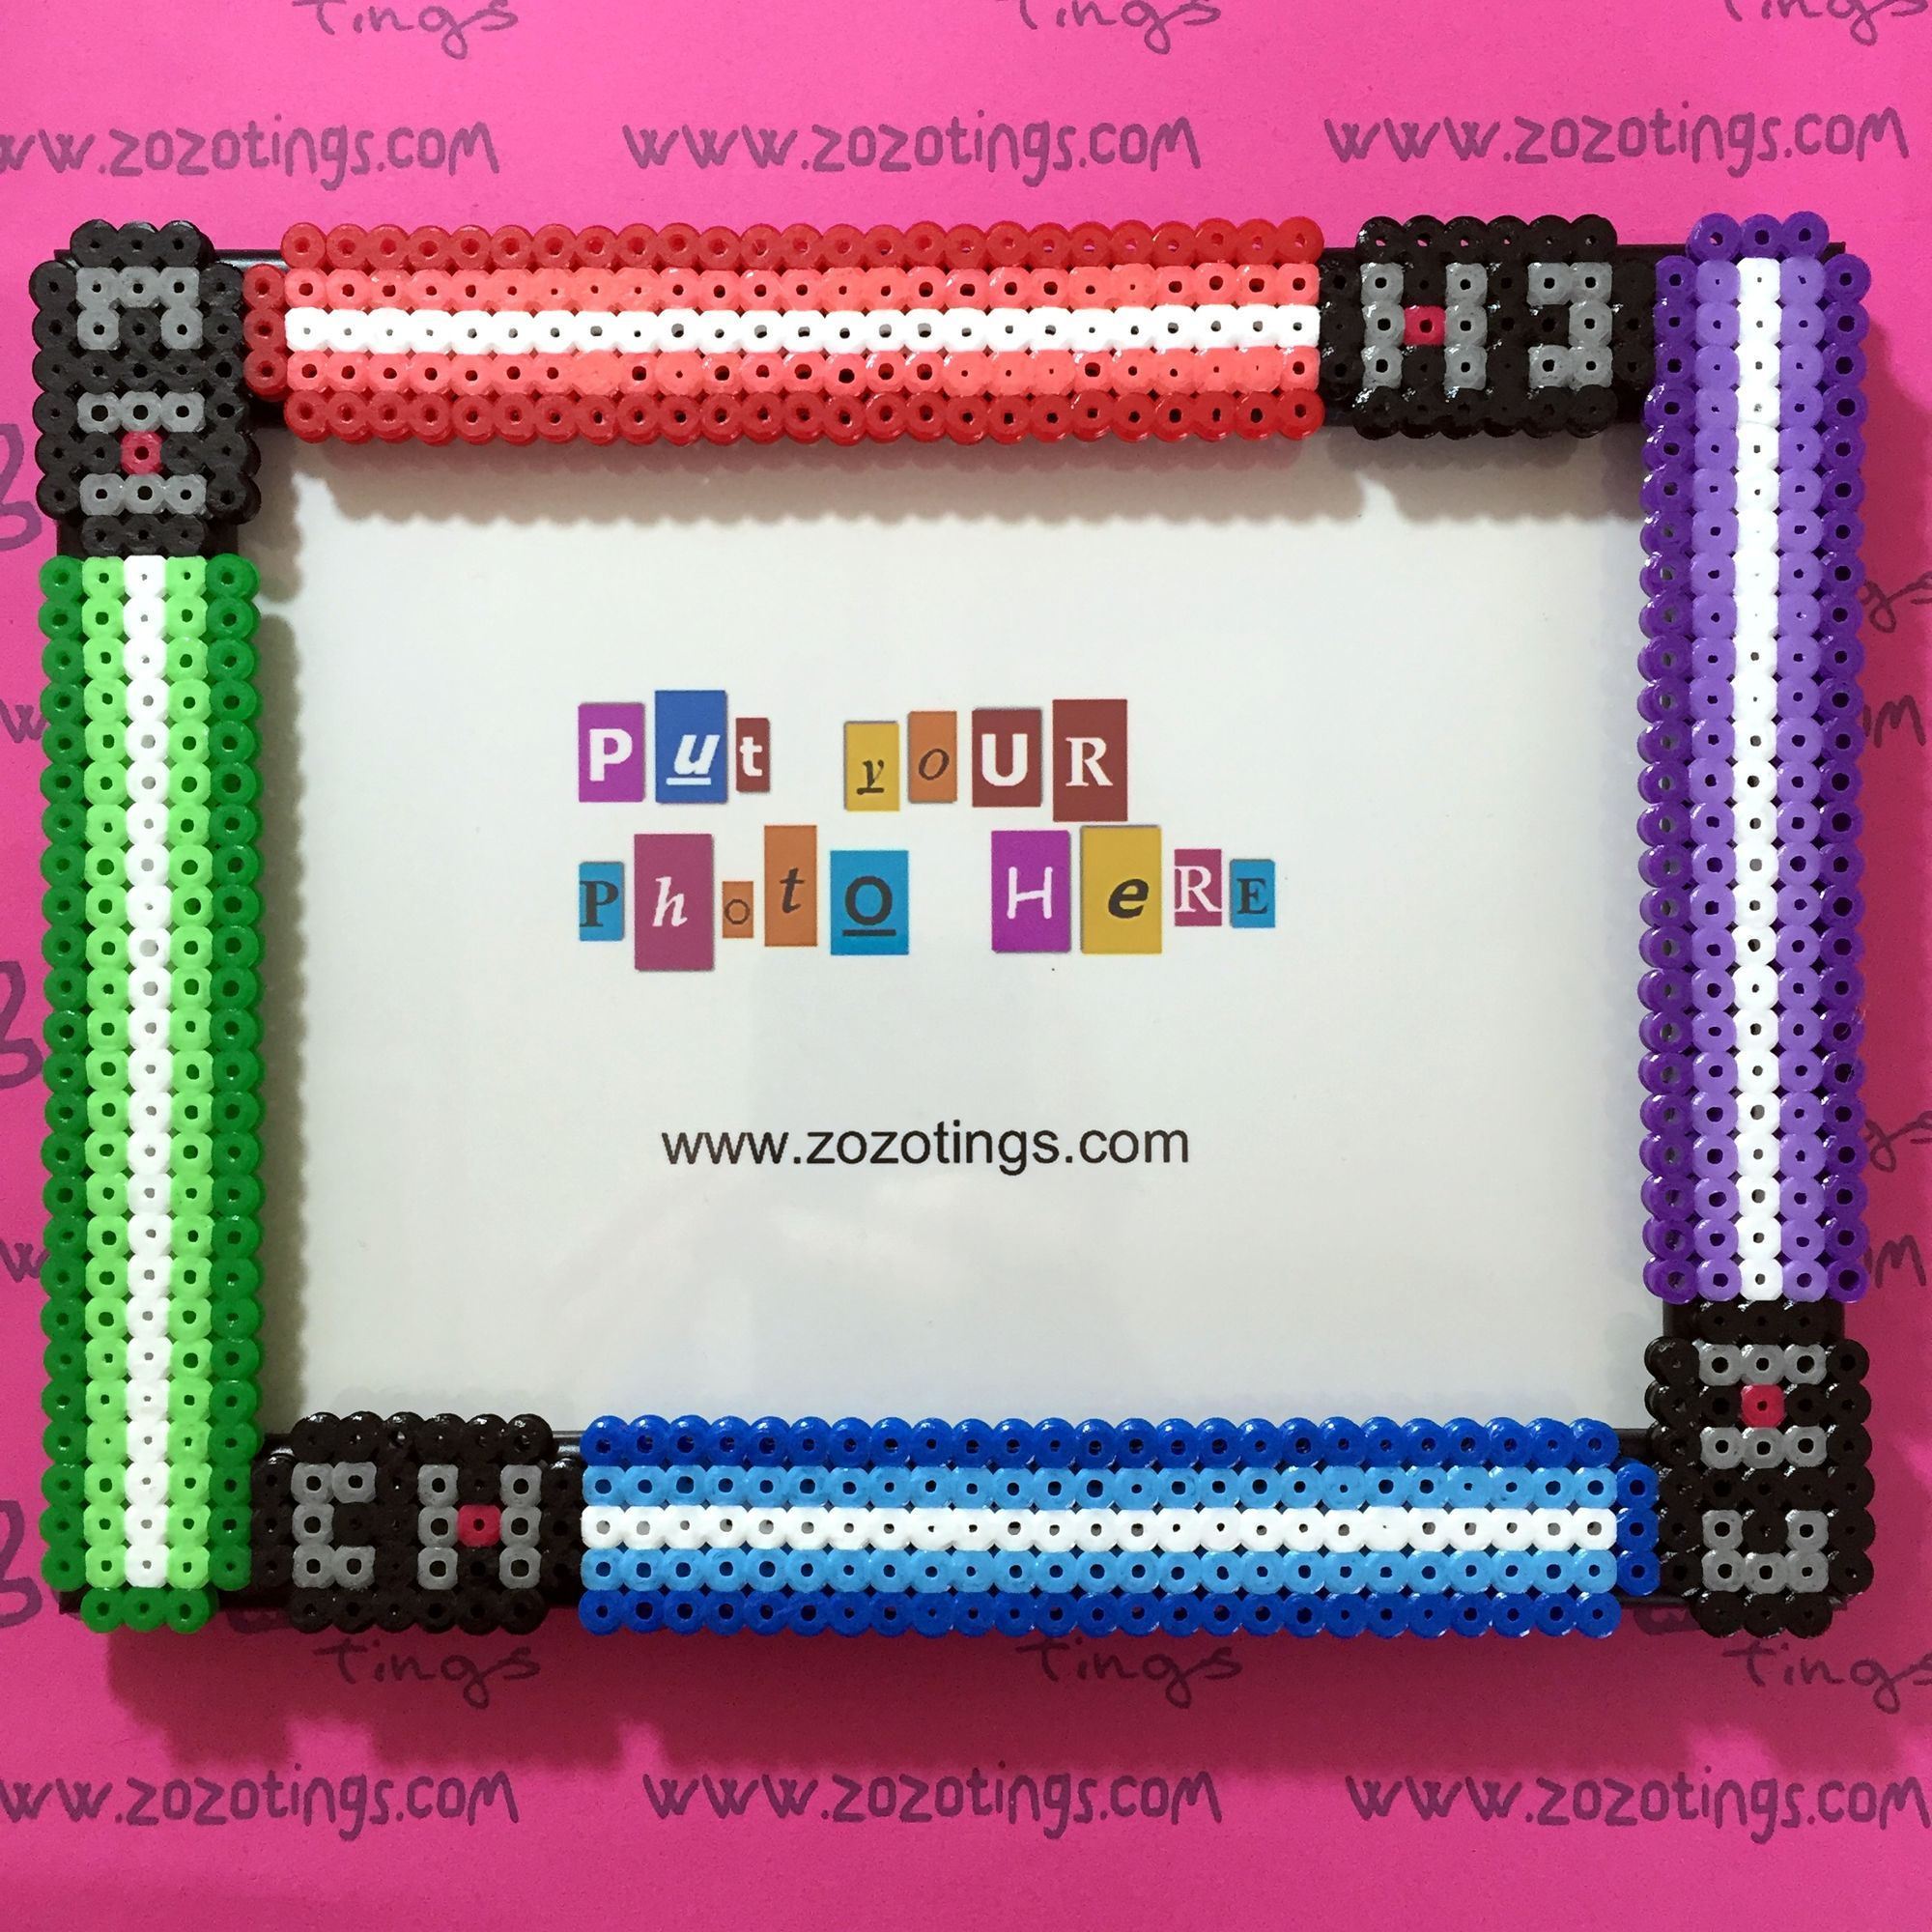 star wars lightsaber photo frame hama beads original design created by zo zo tings